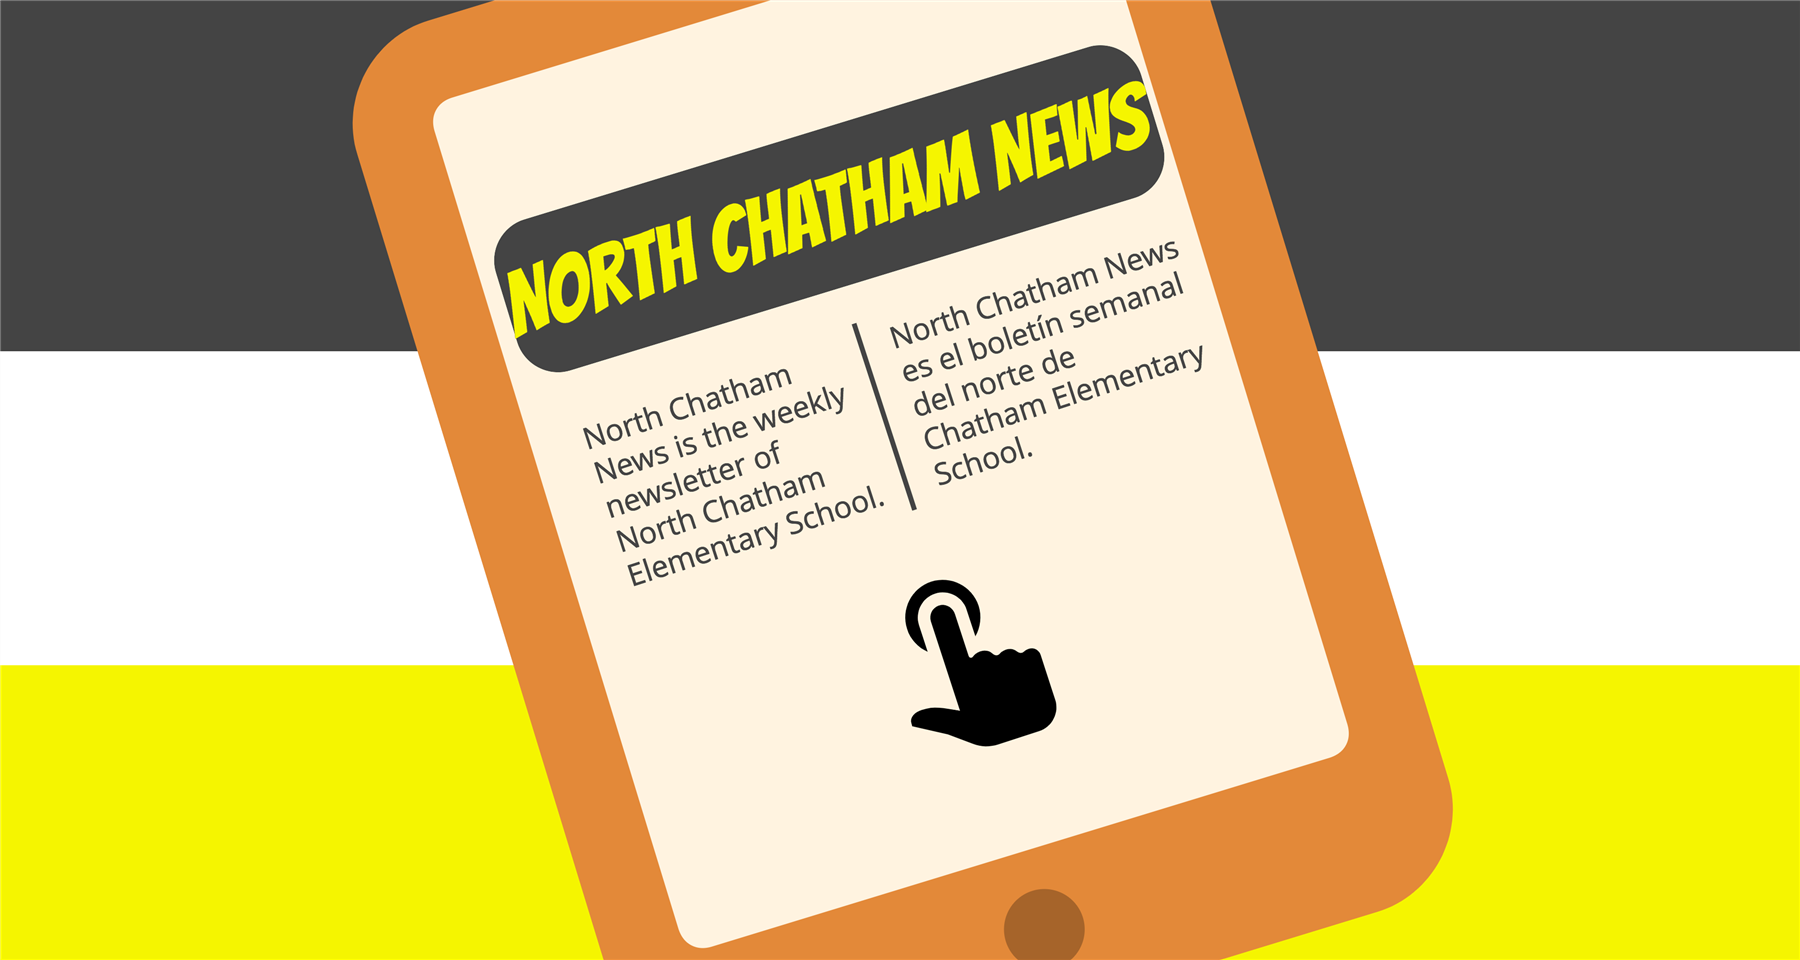 This is the weekly newsletter of North Chatham Elementary School